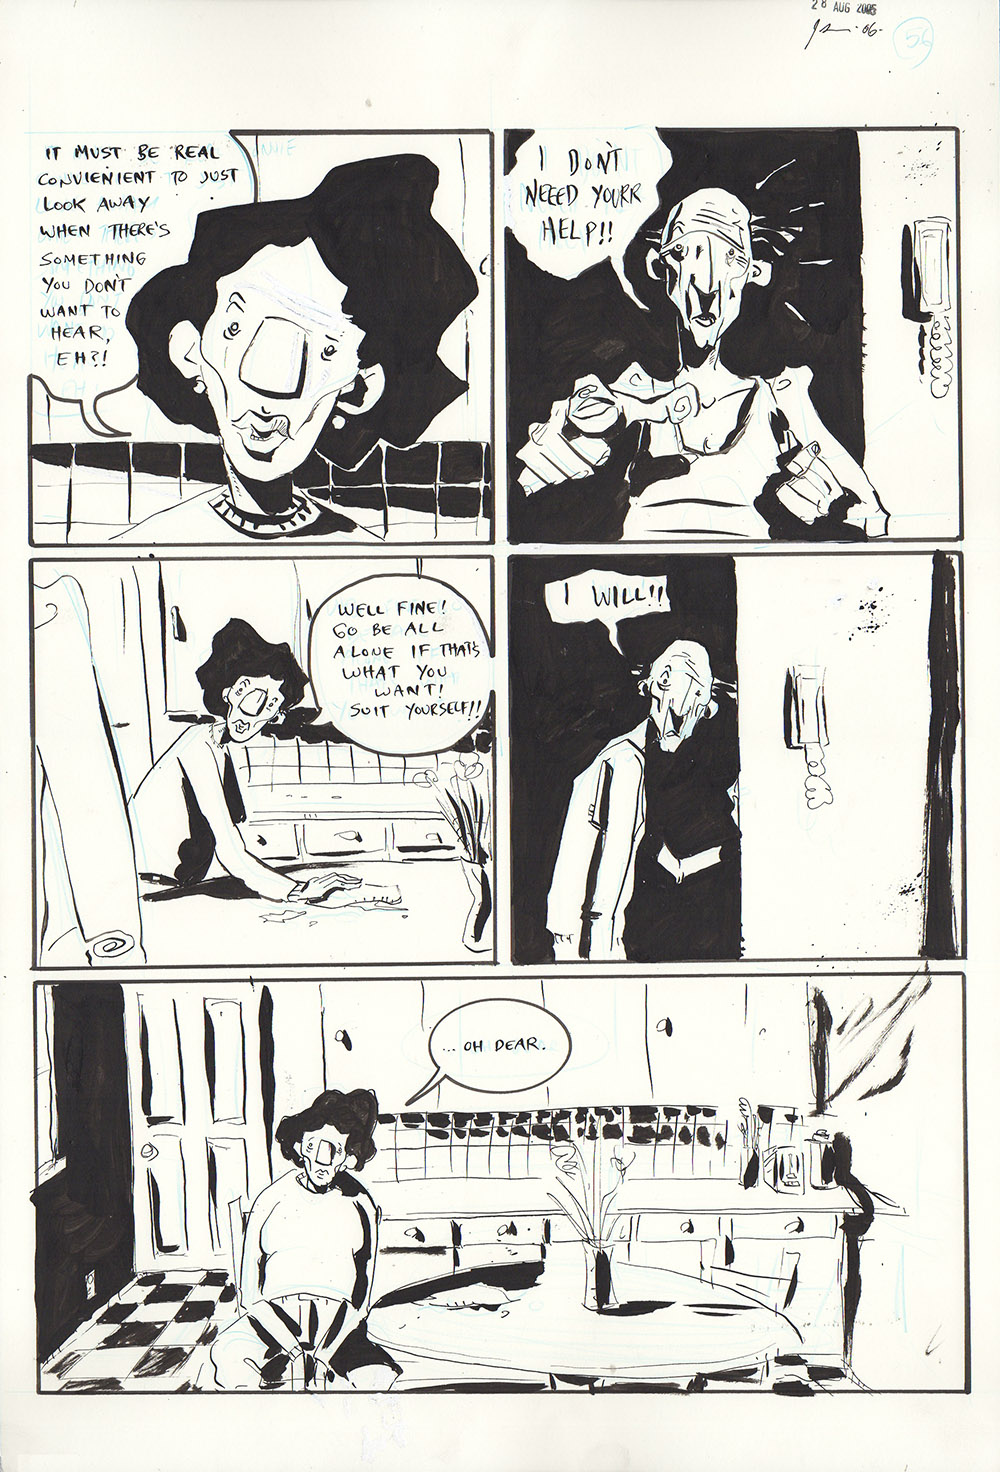 Essex County Book 2: Ghost Stories - page 170